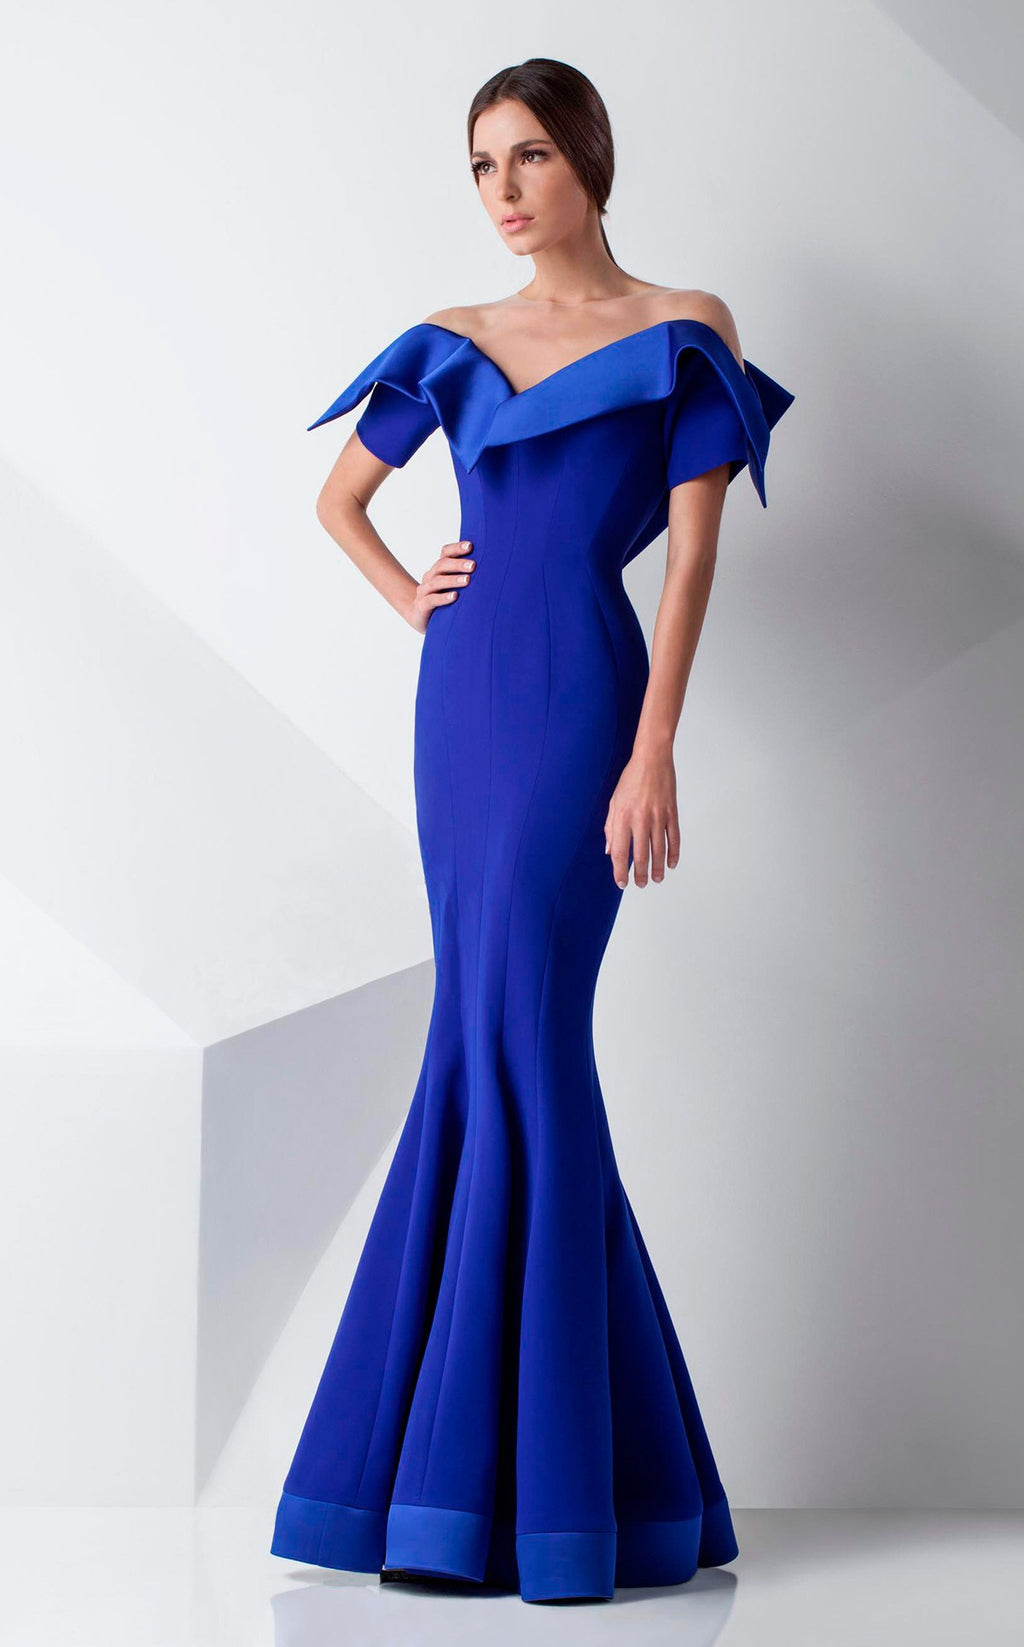 MNM Couture G0782 Mermaid Evening Dress - CYC Boutique